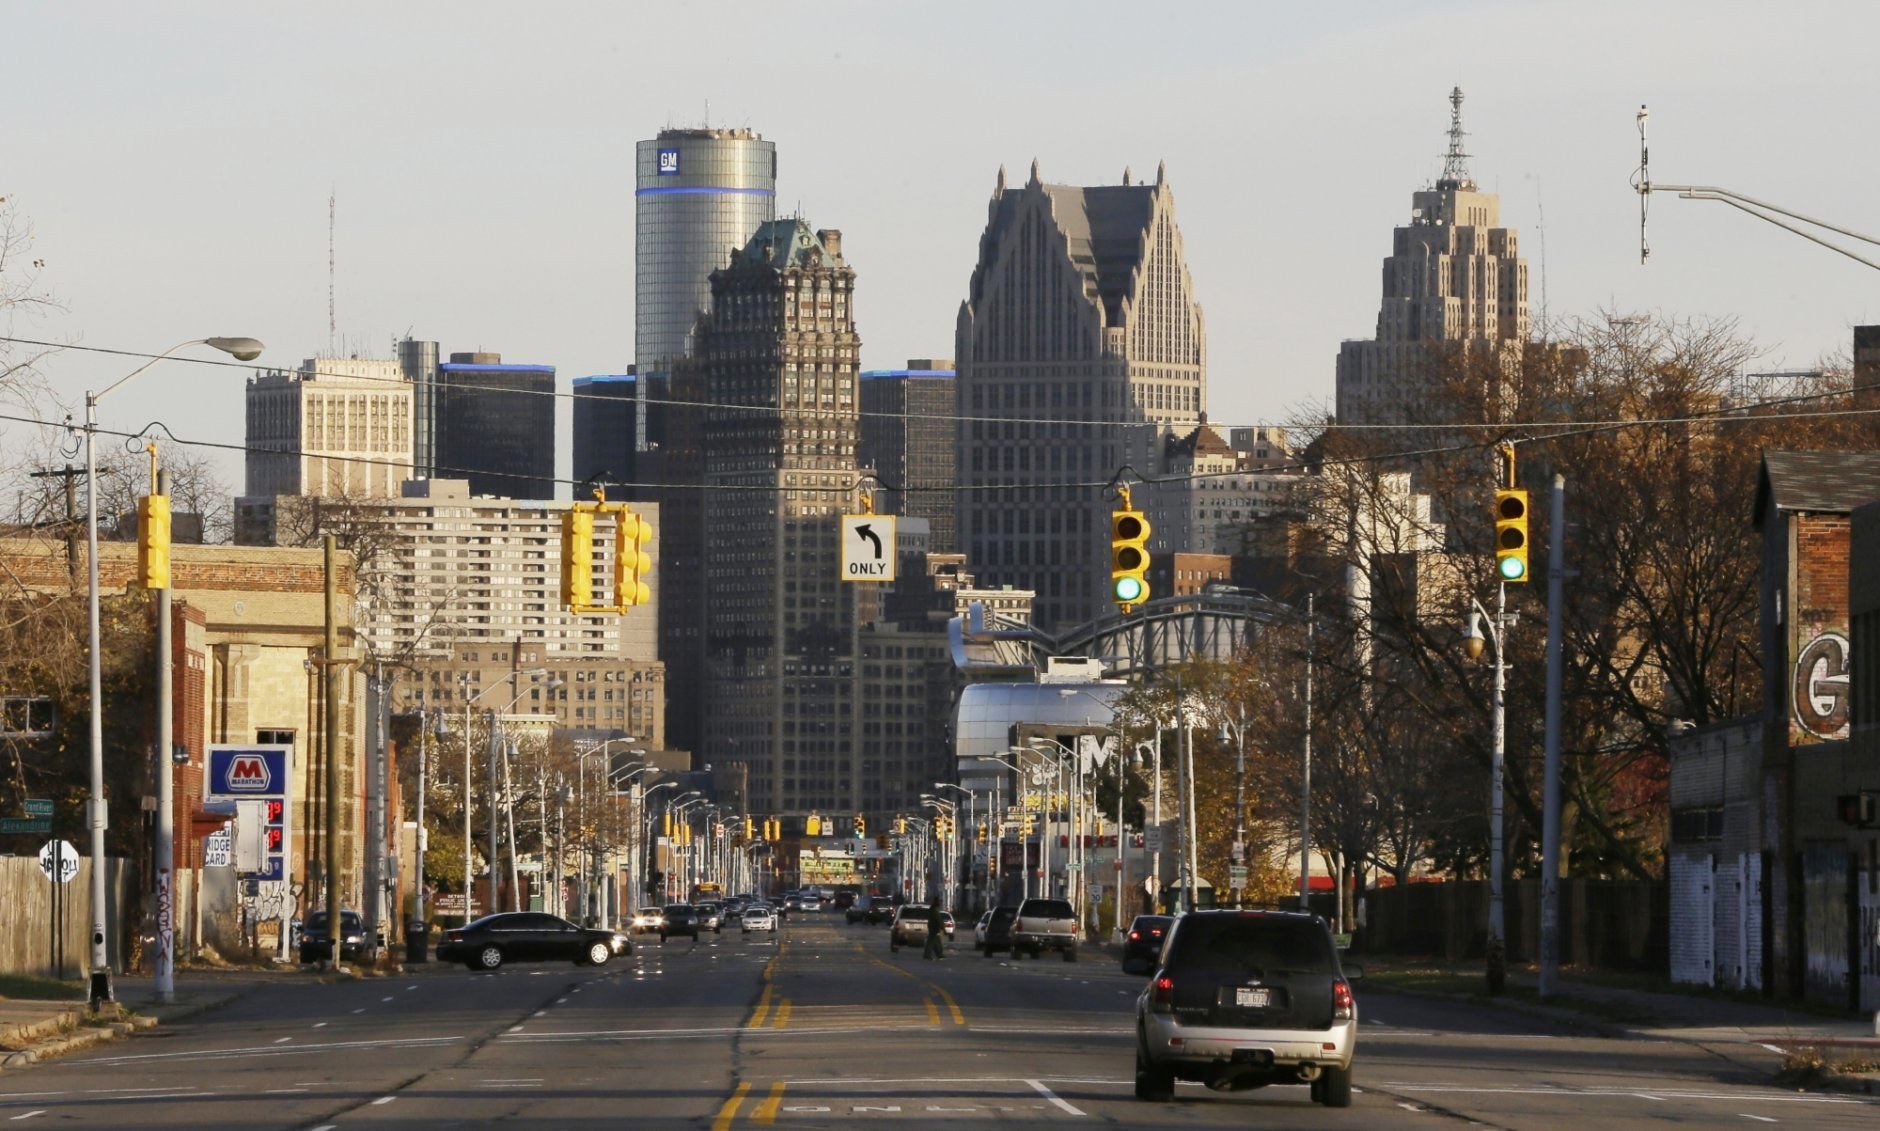 FILE - This Nov. 7, 2014 file photo shows the skyline of the city of Detroit. Detroit reached a key step in fiscal redemption on Monday, April 30, 2018, by reclaiming control of its own finances roughly three years after exiting the largest municipal bankruptcy in U.S. history. (AP Photo/Carlos Osorio, File)